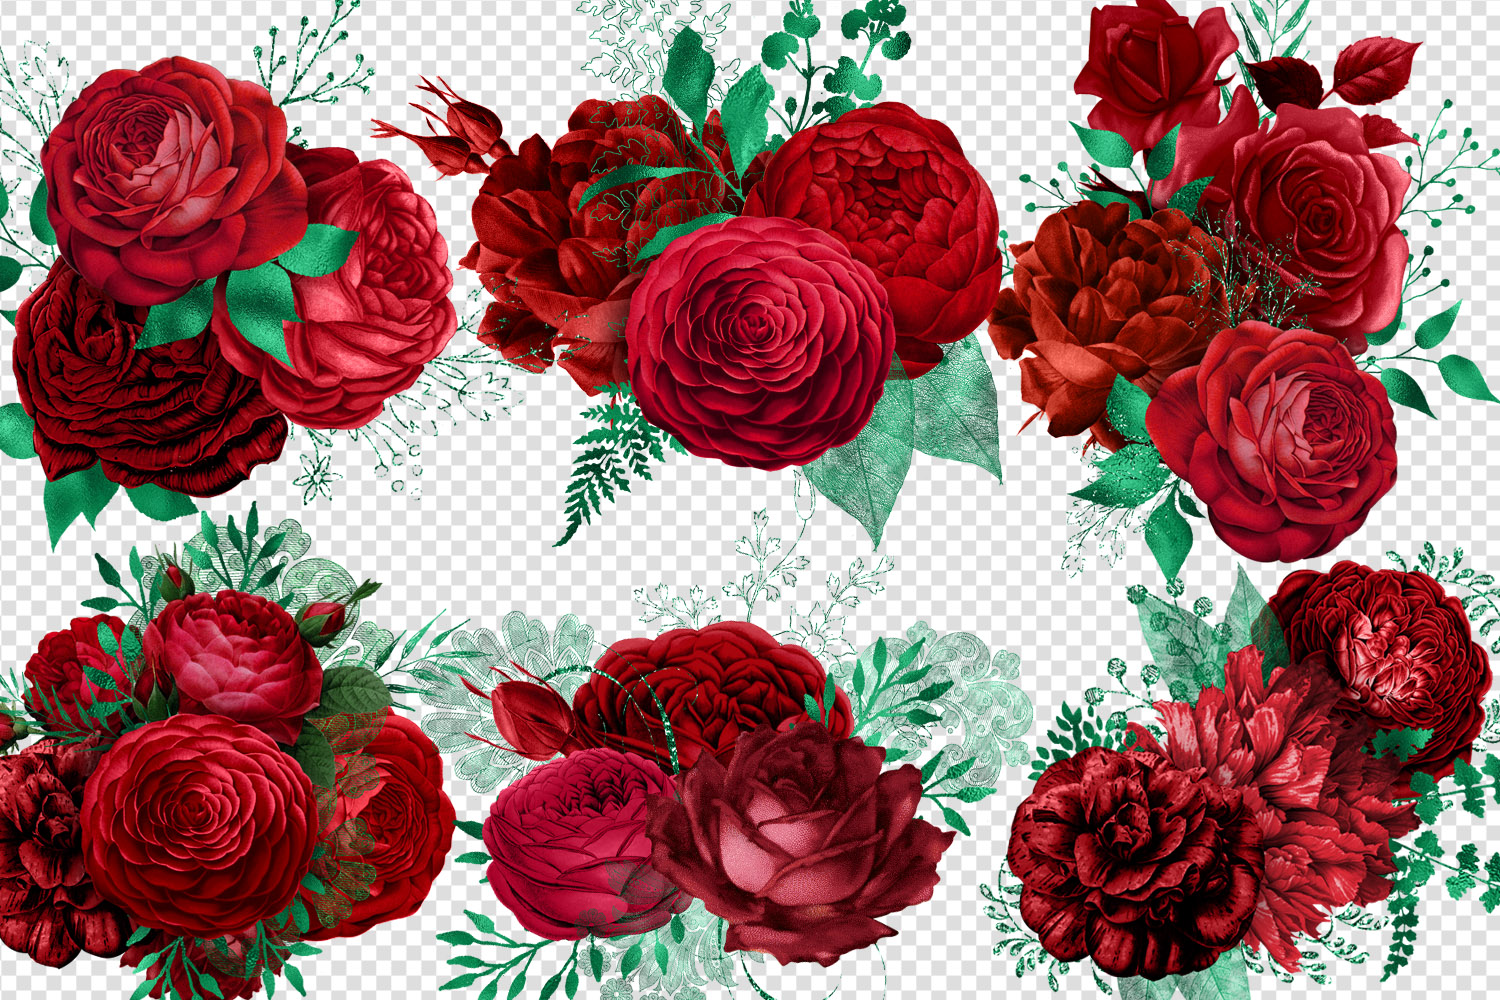 Red and Green Bouquets Clipart example image 3